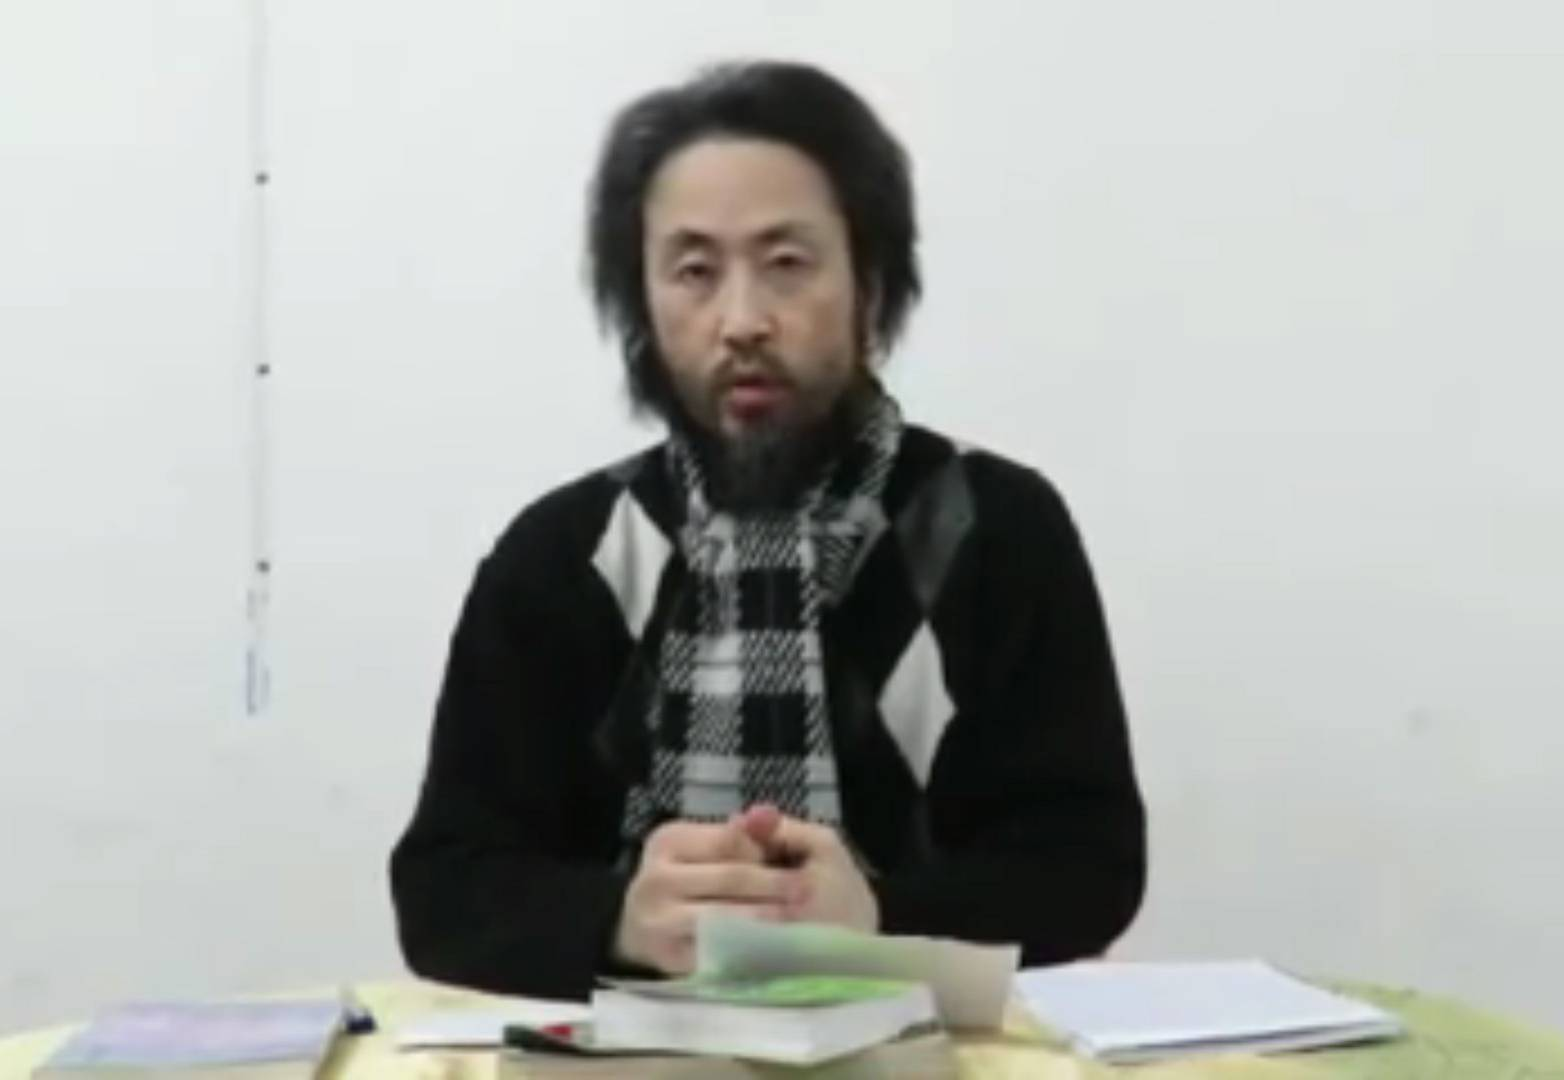 A man who appears to be Jumpei Yasuda, a journalist who went missing in Syria last year, is seen speaking in this screen shot of a video uploaded to Facebook on Thursday. | FACEBOOK